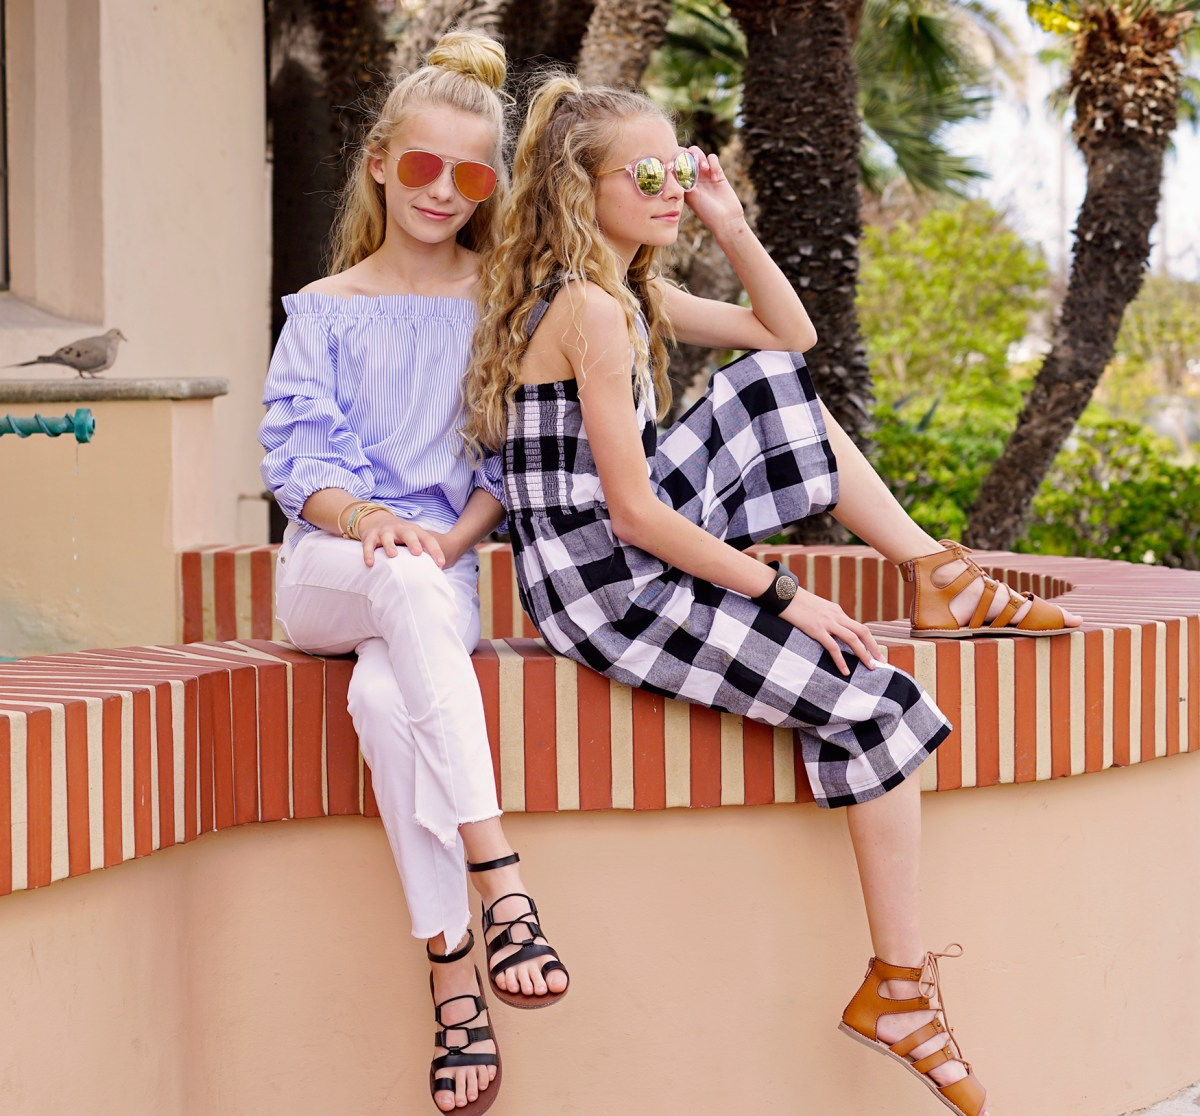 Beach Tropical Vacation Kid Blond Girl With Fashion: Vacay With Habitual Girl